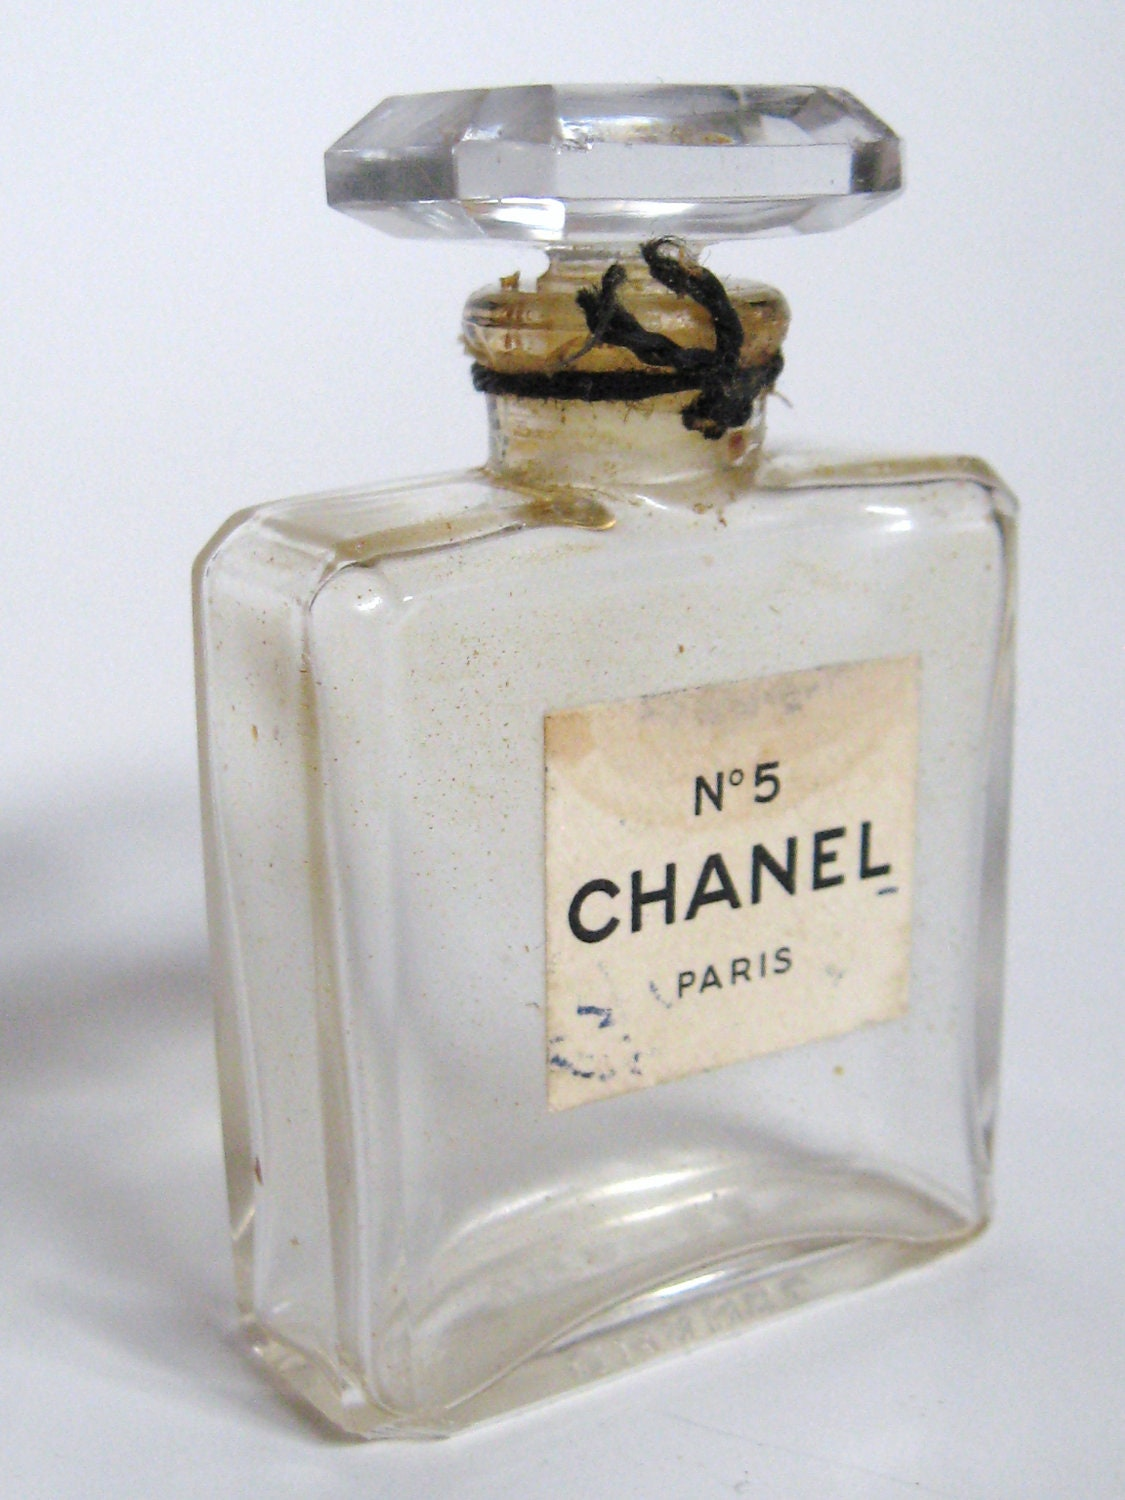 Vintage 1950s CHANEL No. 5 PARIS Crystal Glass 1/2 Ounce Perfume Bottle..Made in France..Avant Garde Mod Mid Century